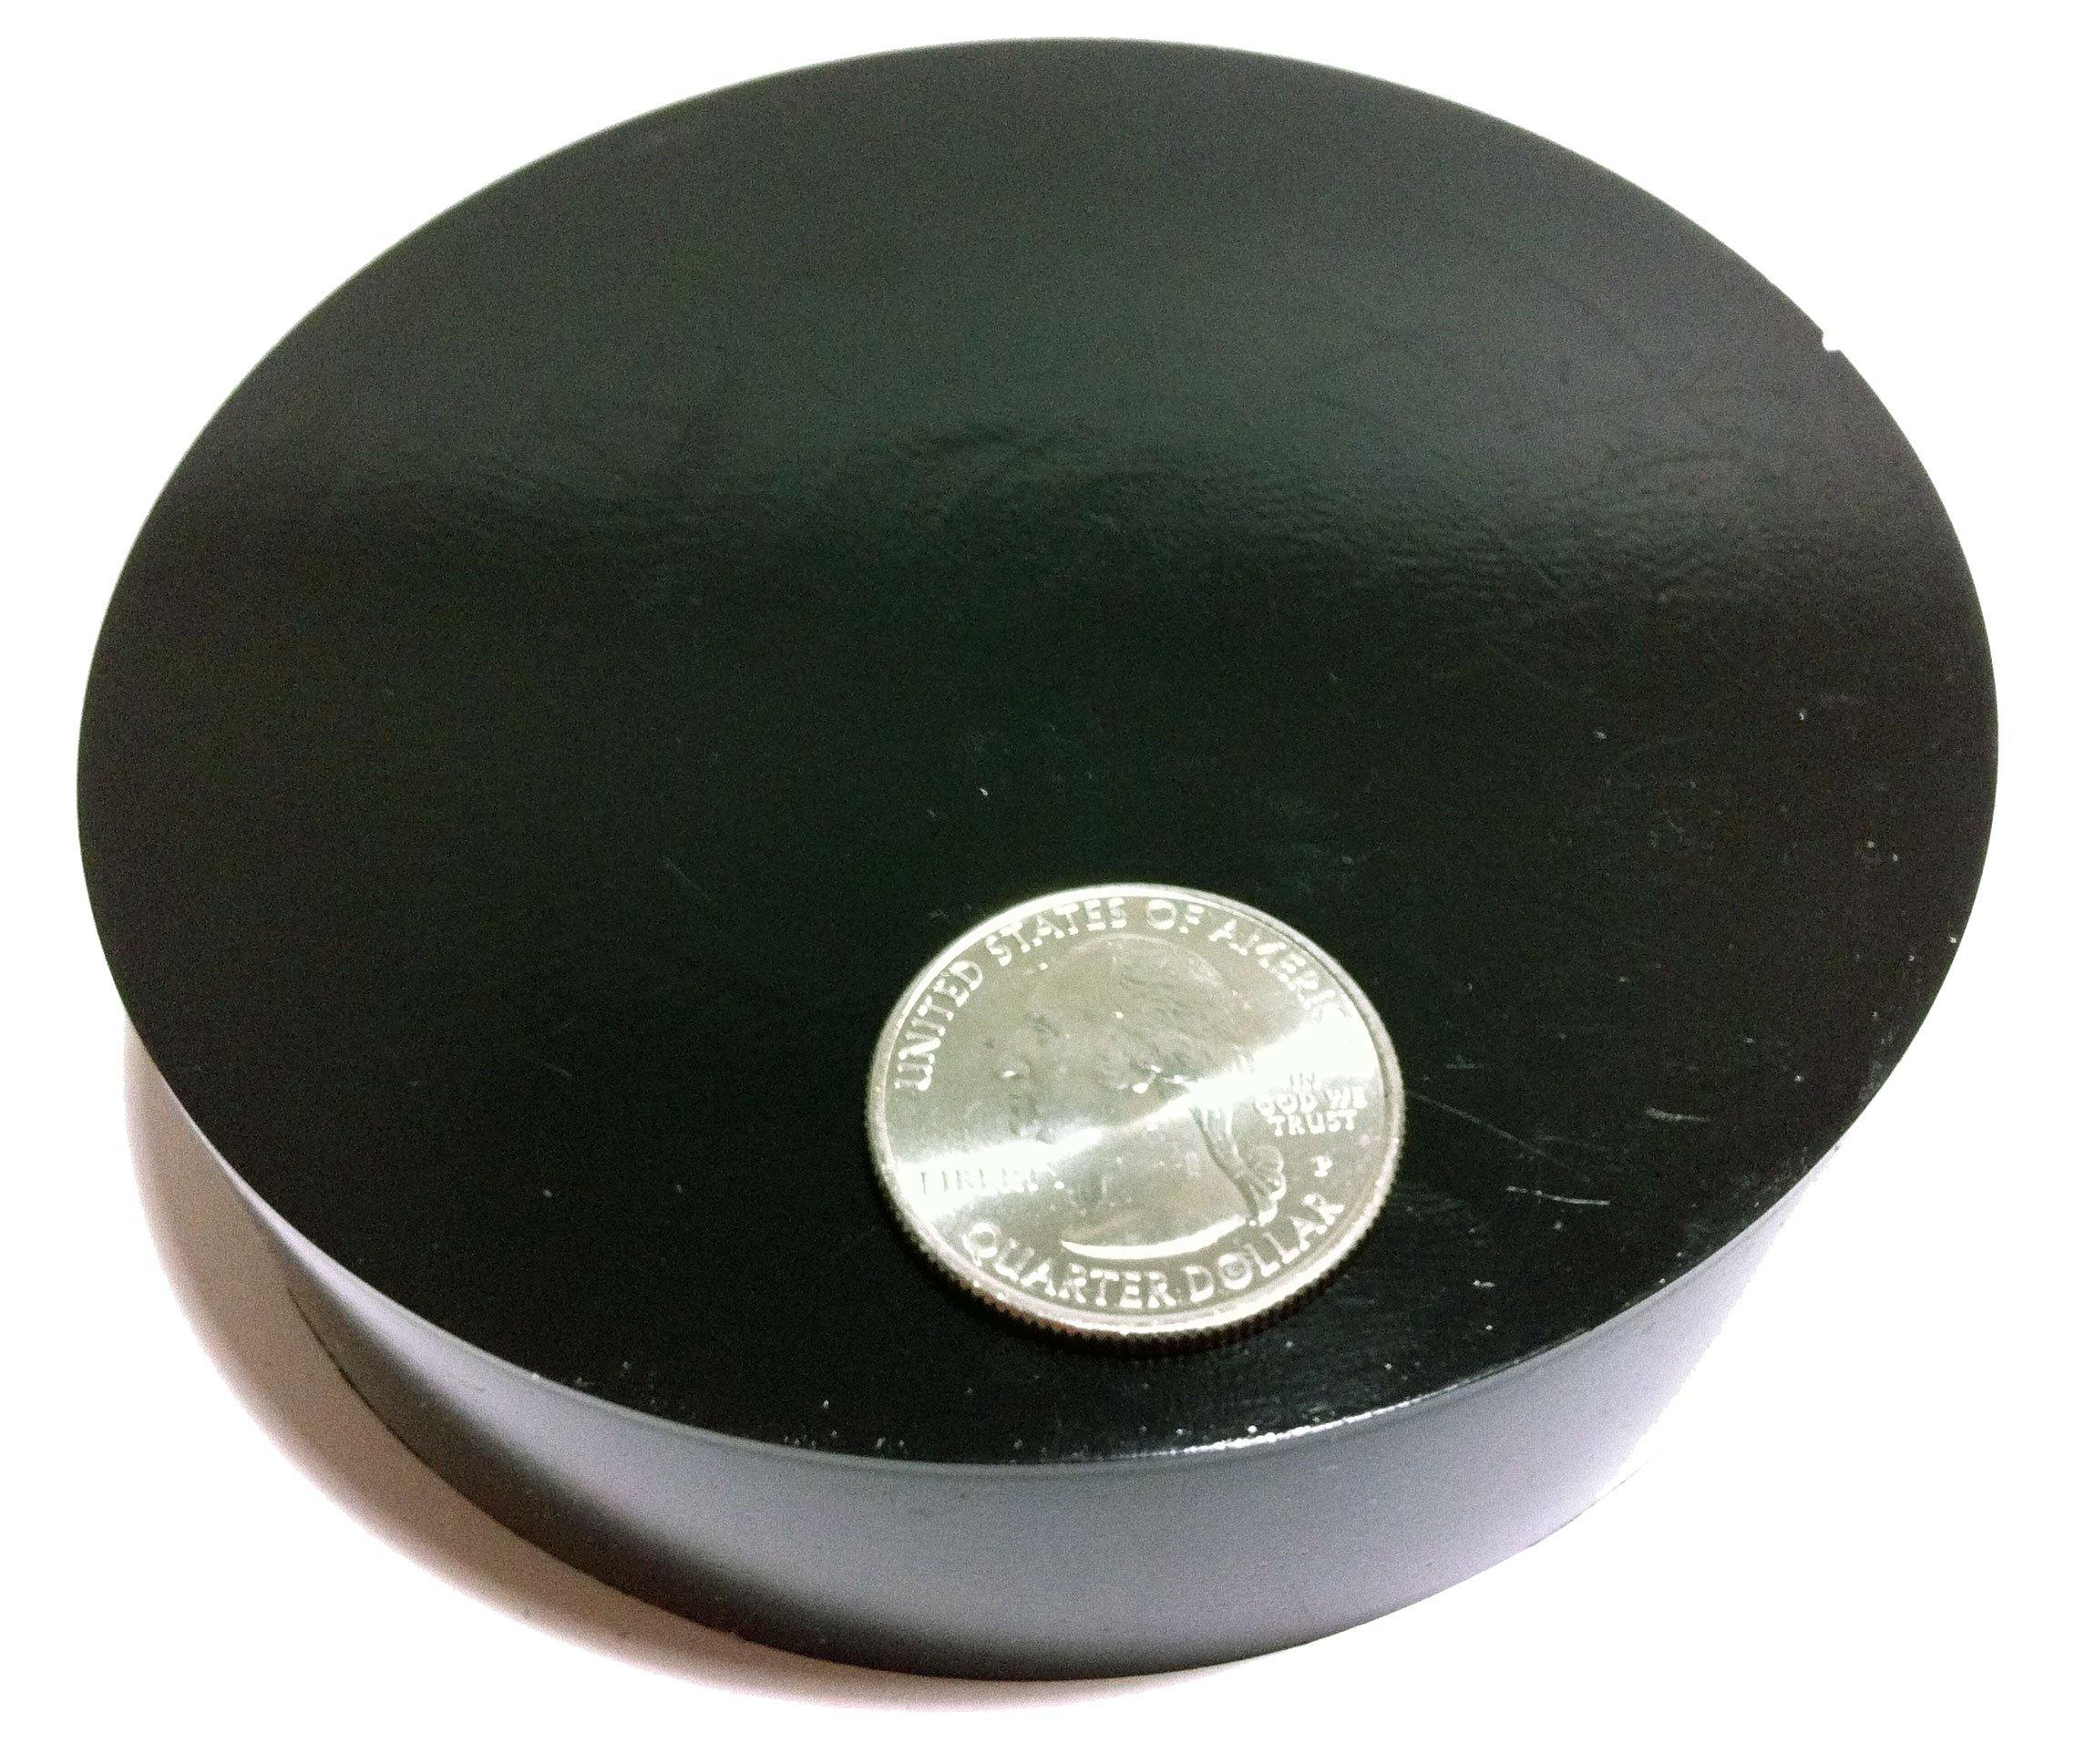 Isolate It: Sorbothane Vibration Isolation Circular Pad 50 Duro (1'' Thick 4'' Dia.) - 4 Pack by Isolate It! (Image #2)